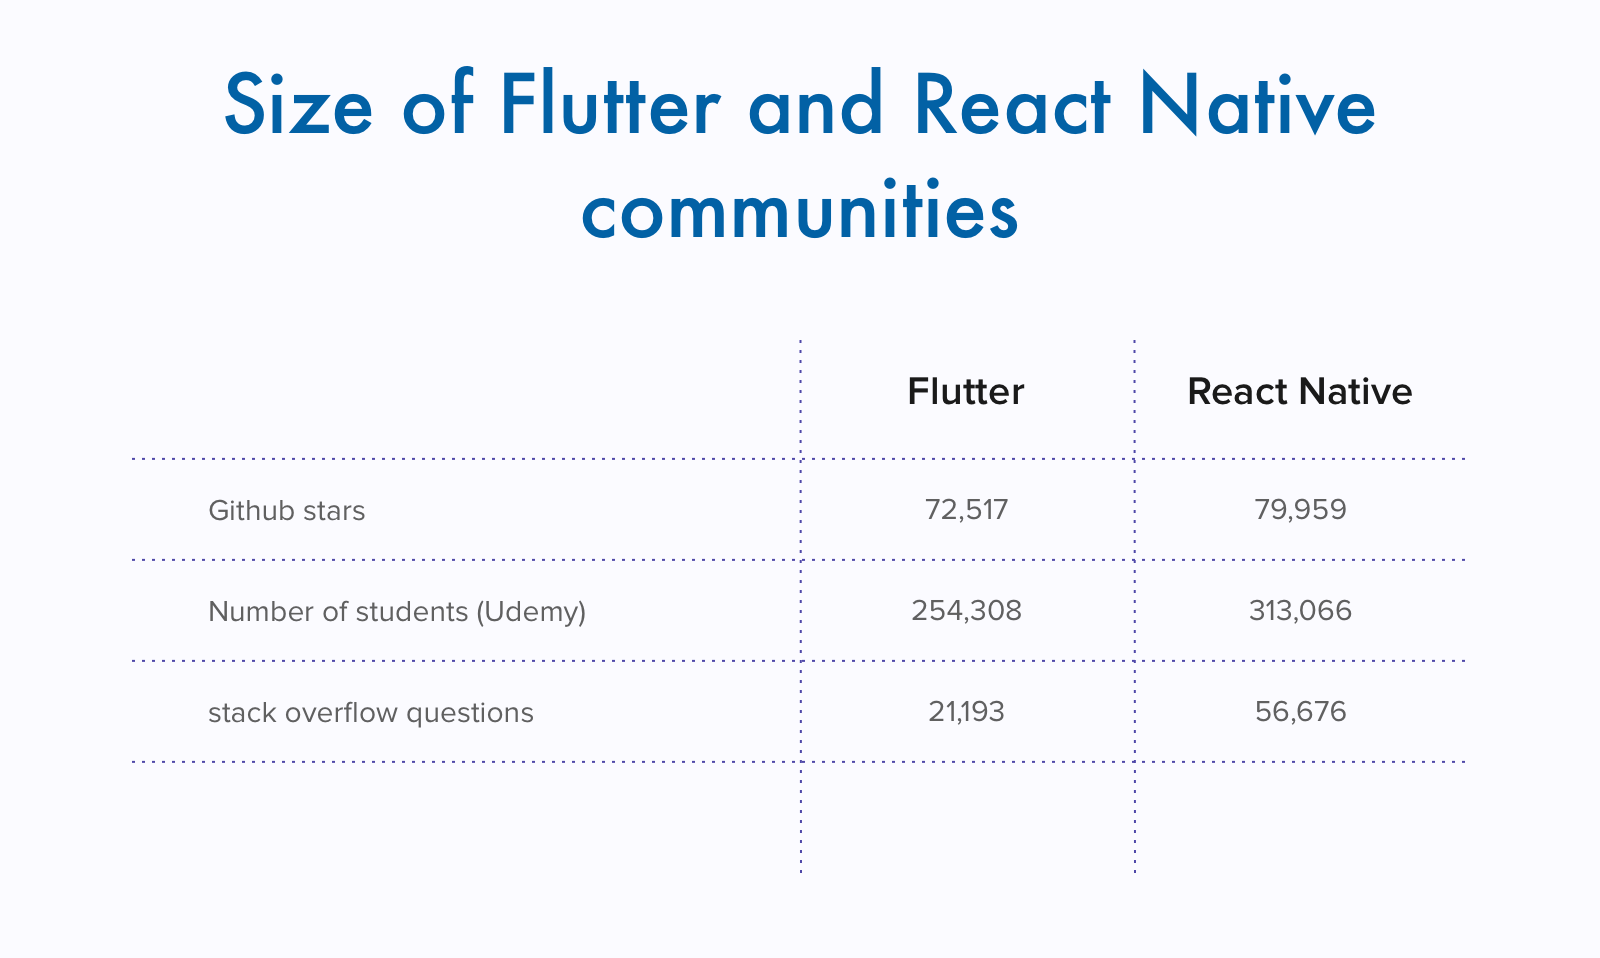 Size of Flutter and React Native communities